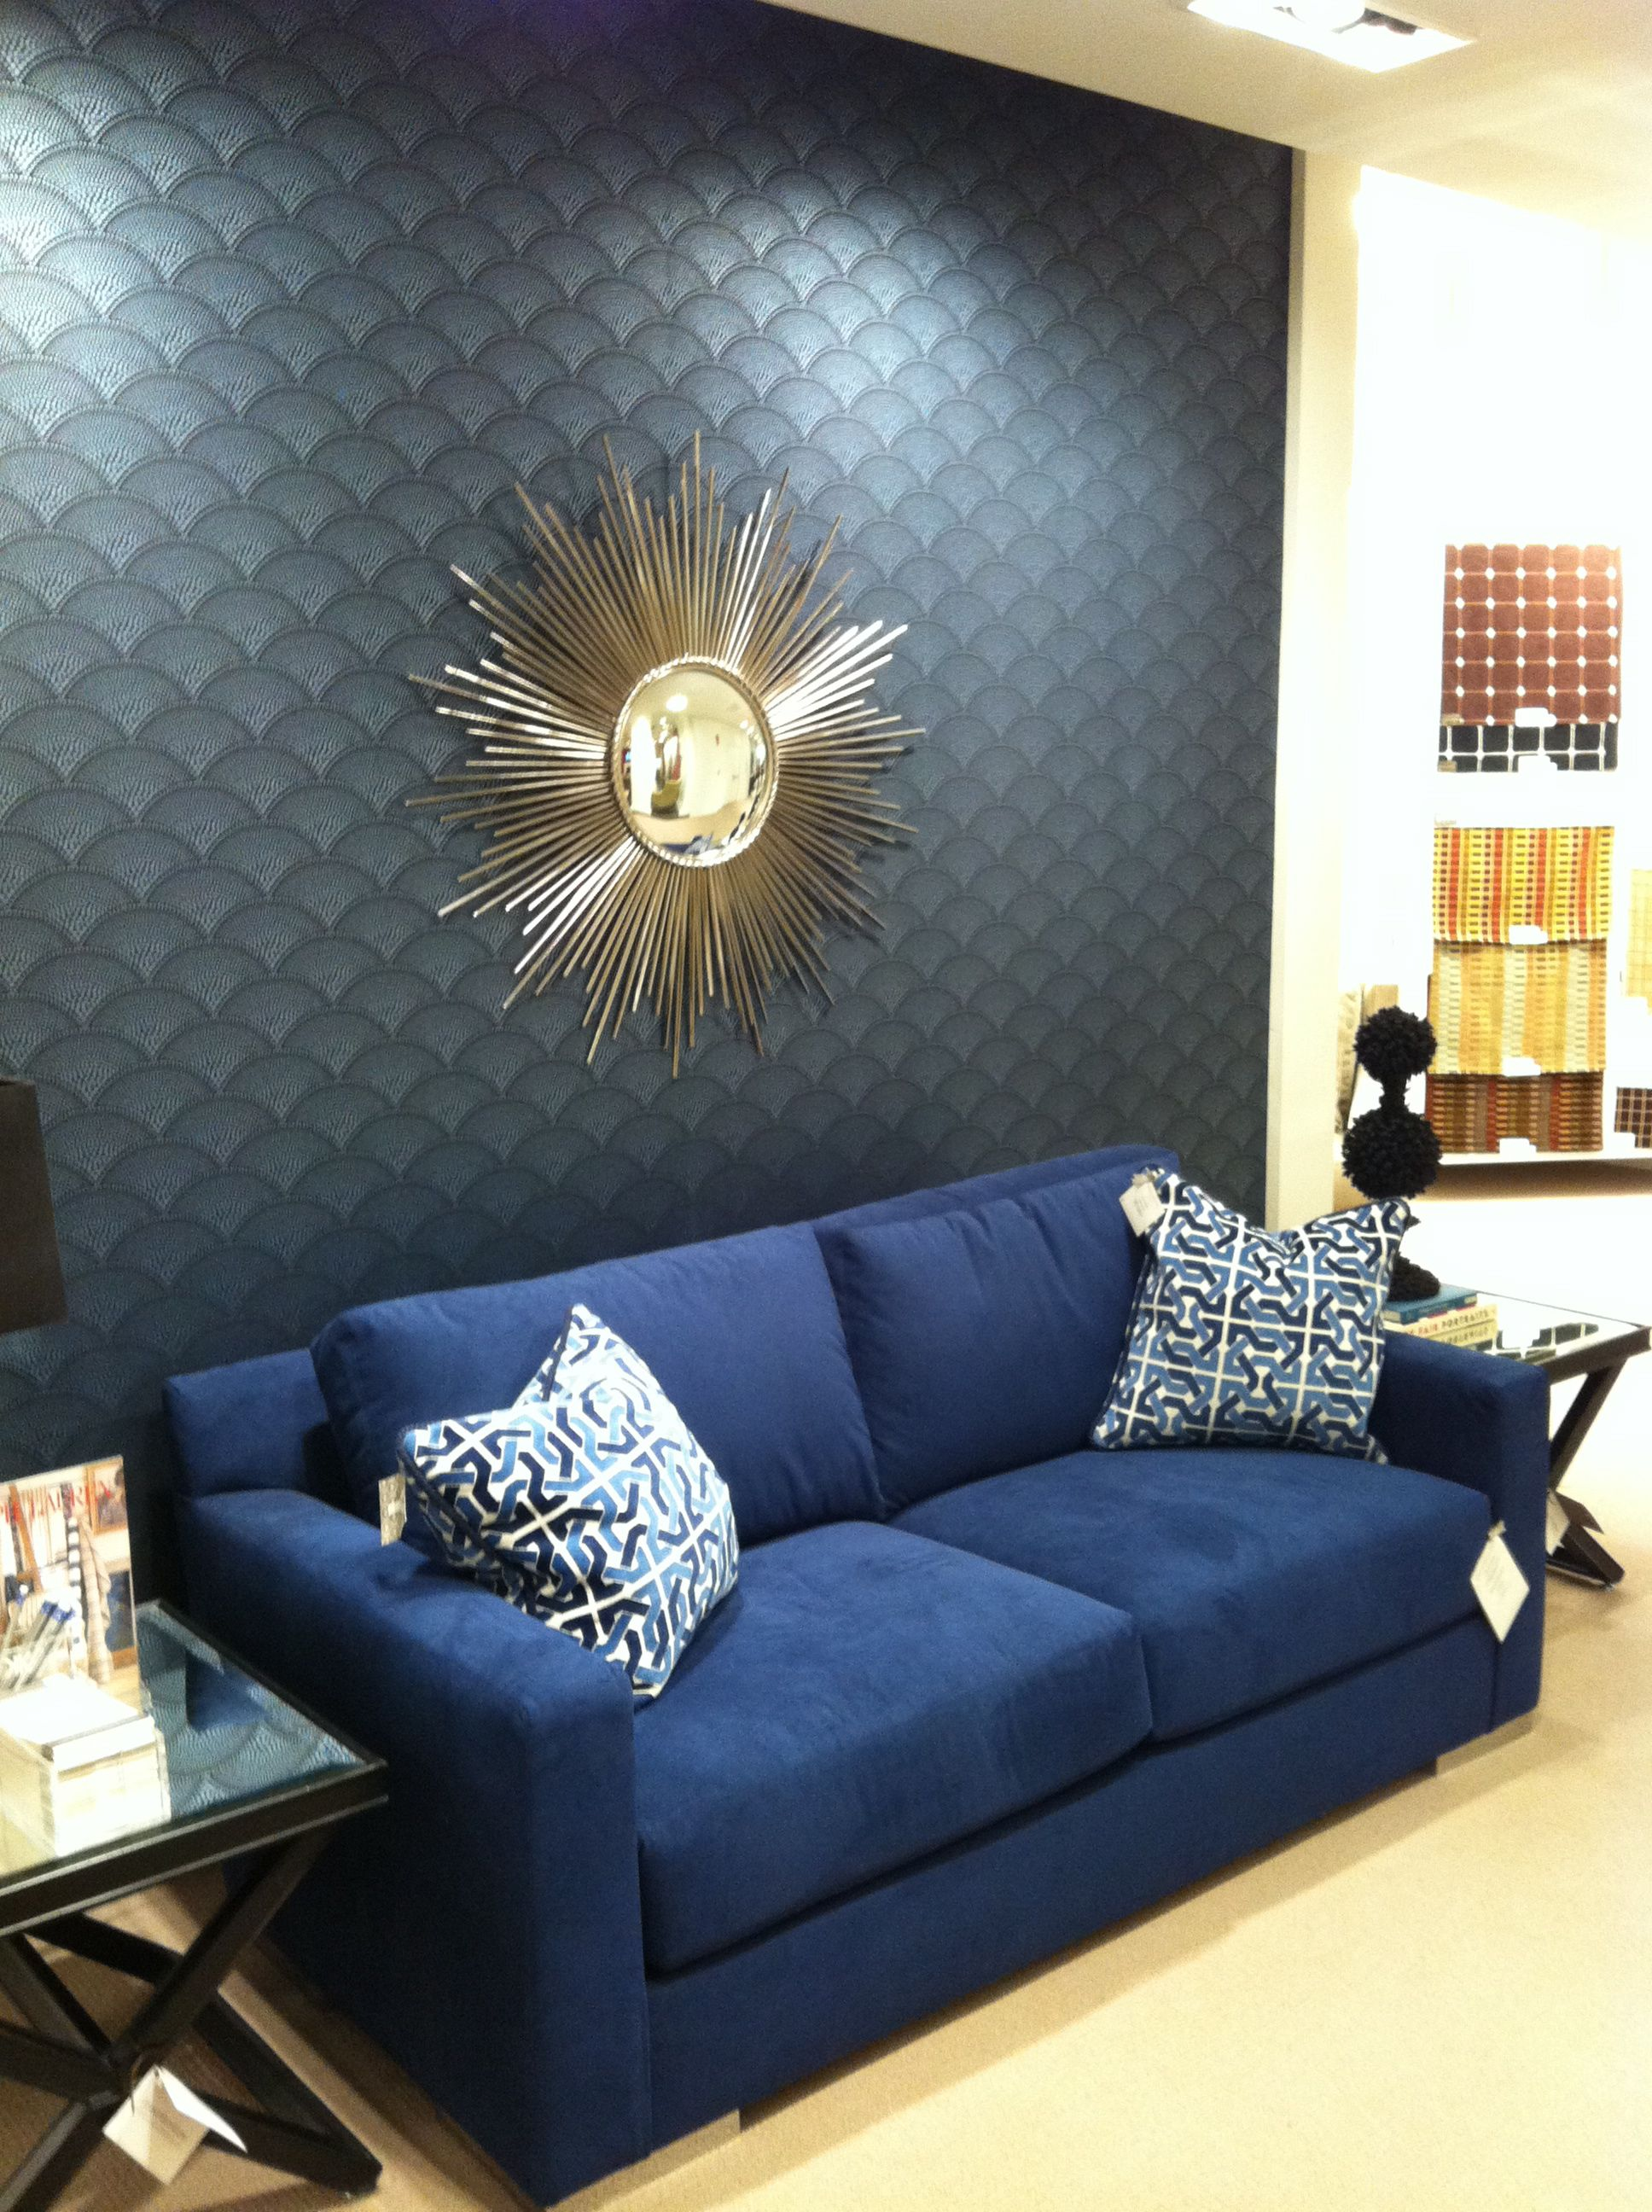 blue sofa living room ideas jennifer convertibles with chaise نتيجة بحث الصور عن sofas paints